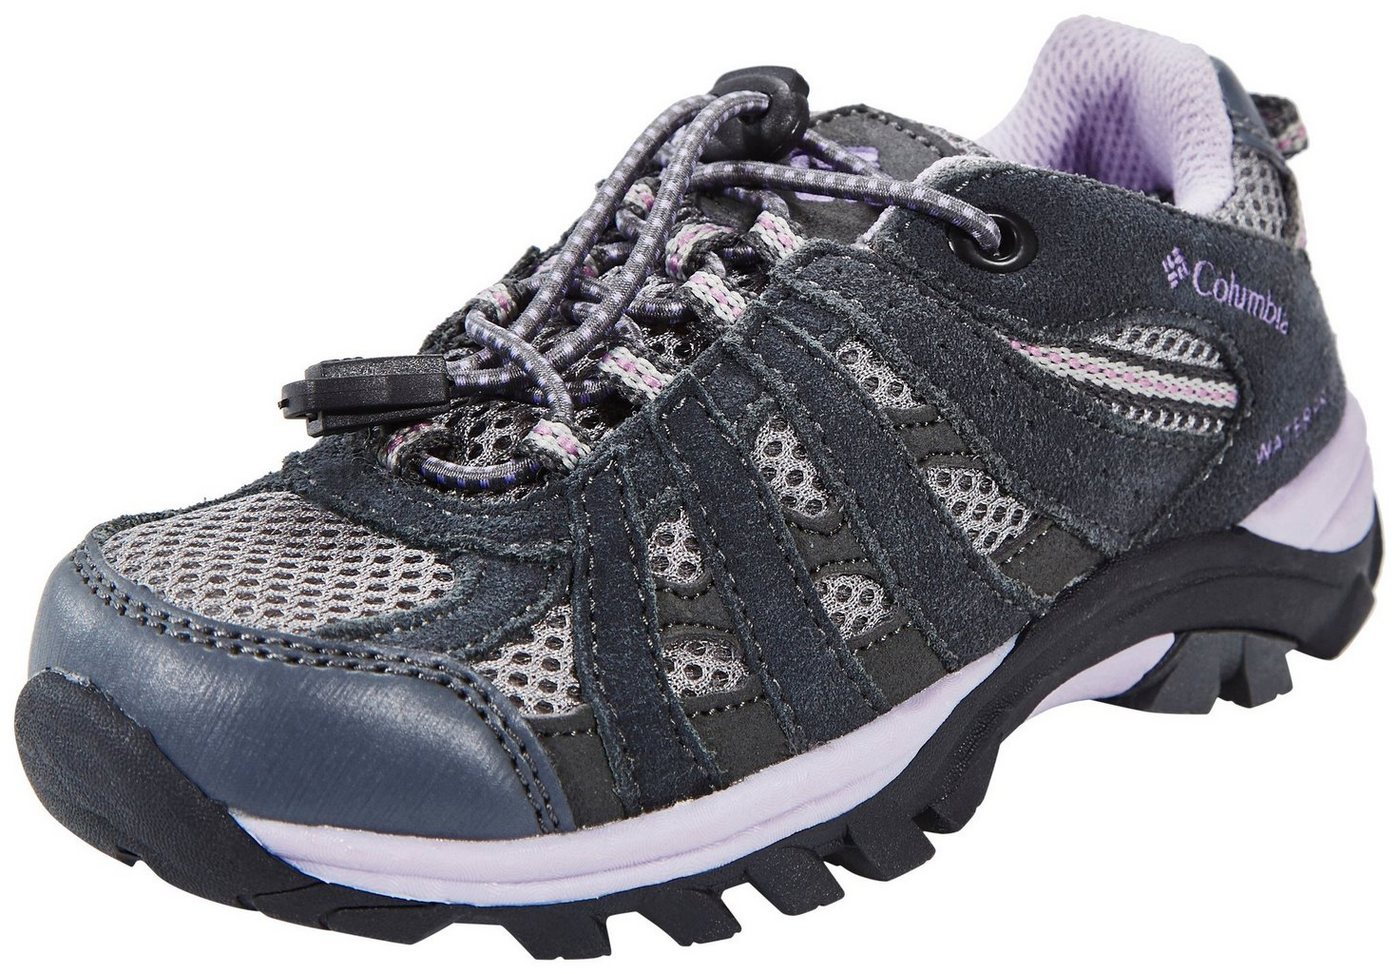 Columbia Freizeitschuh »Redmond Explore Waterproof Shoes Youth«